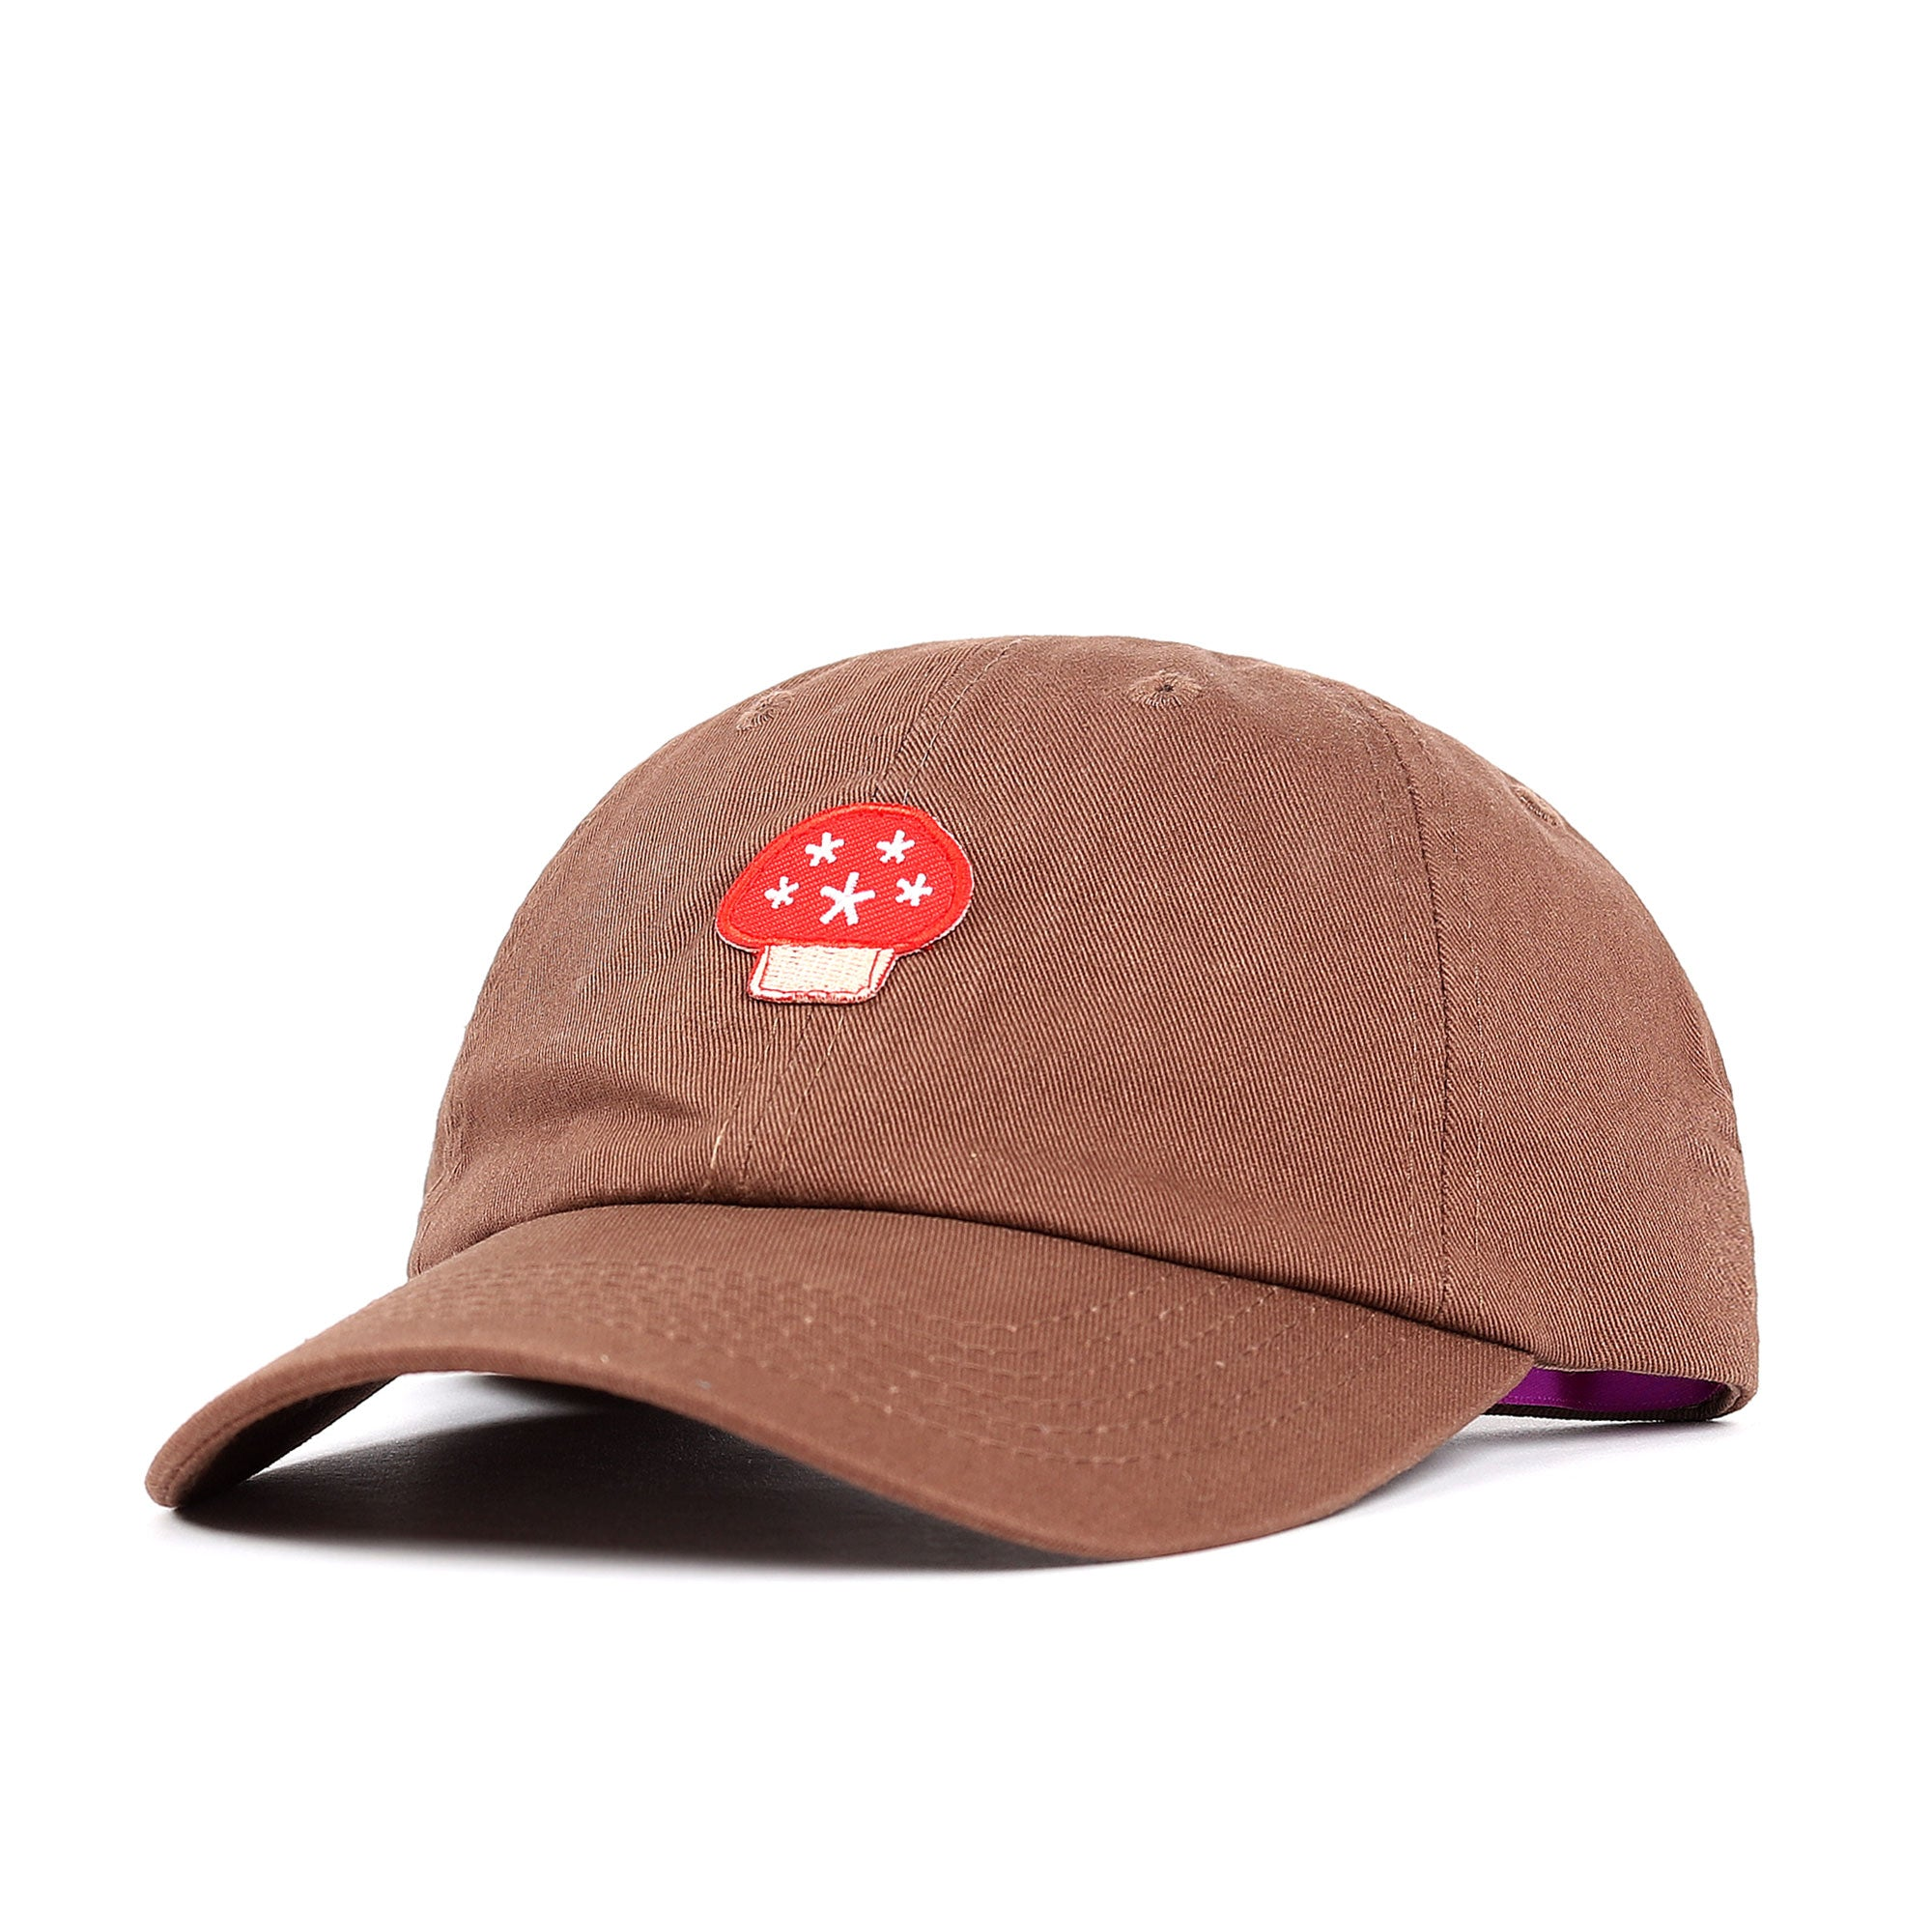 Stingwater V Speshal Mushroom Cap Product Photo #1